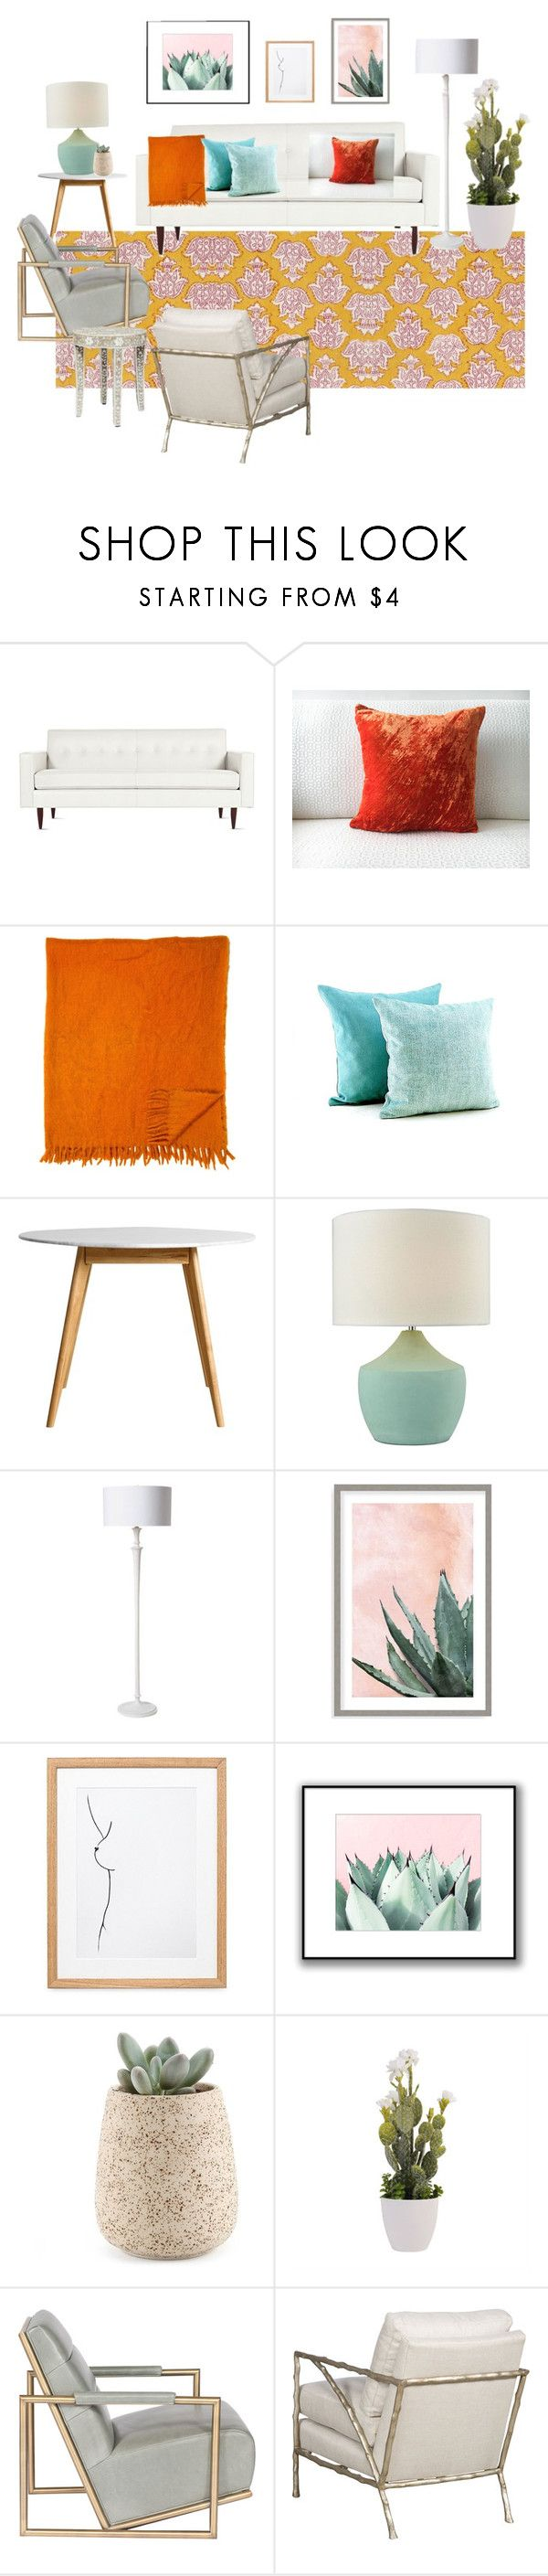 """If you catch my drift"" by jess-heppell-designer on Polyvore featuring interior, interiors, interior design, home, home decor, interior decorating, Design Within Reach, Frette, Barbara Cosgrove and Art Addiction"